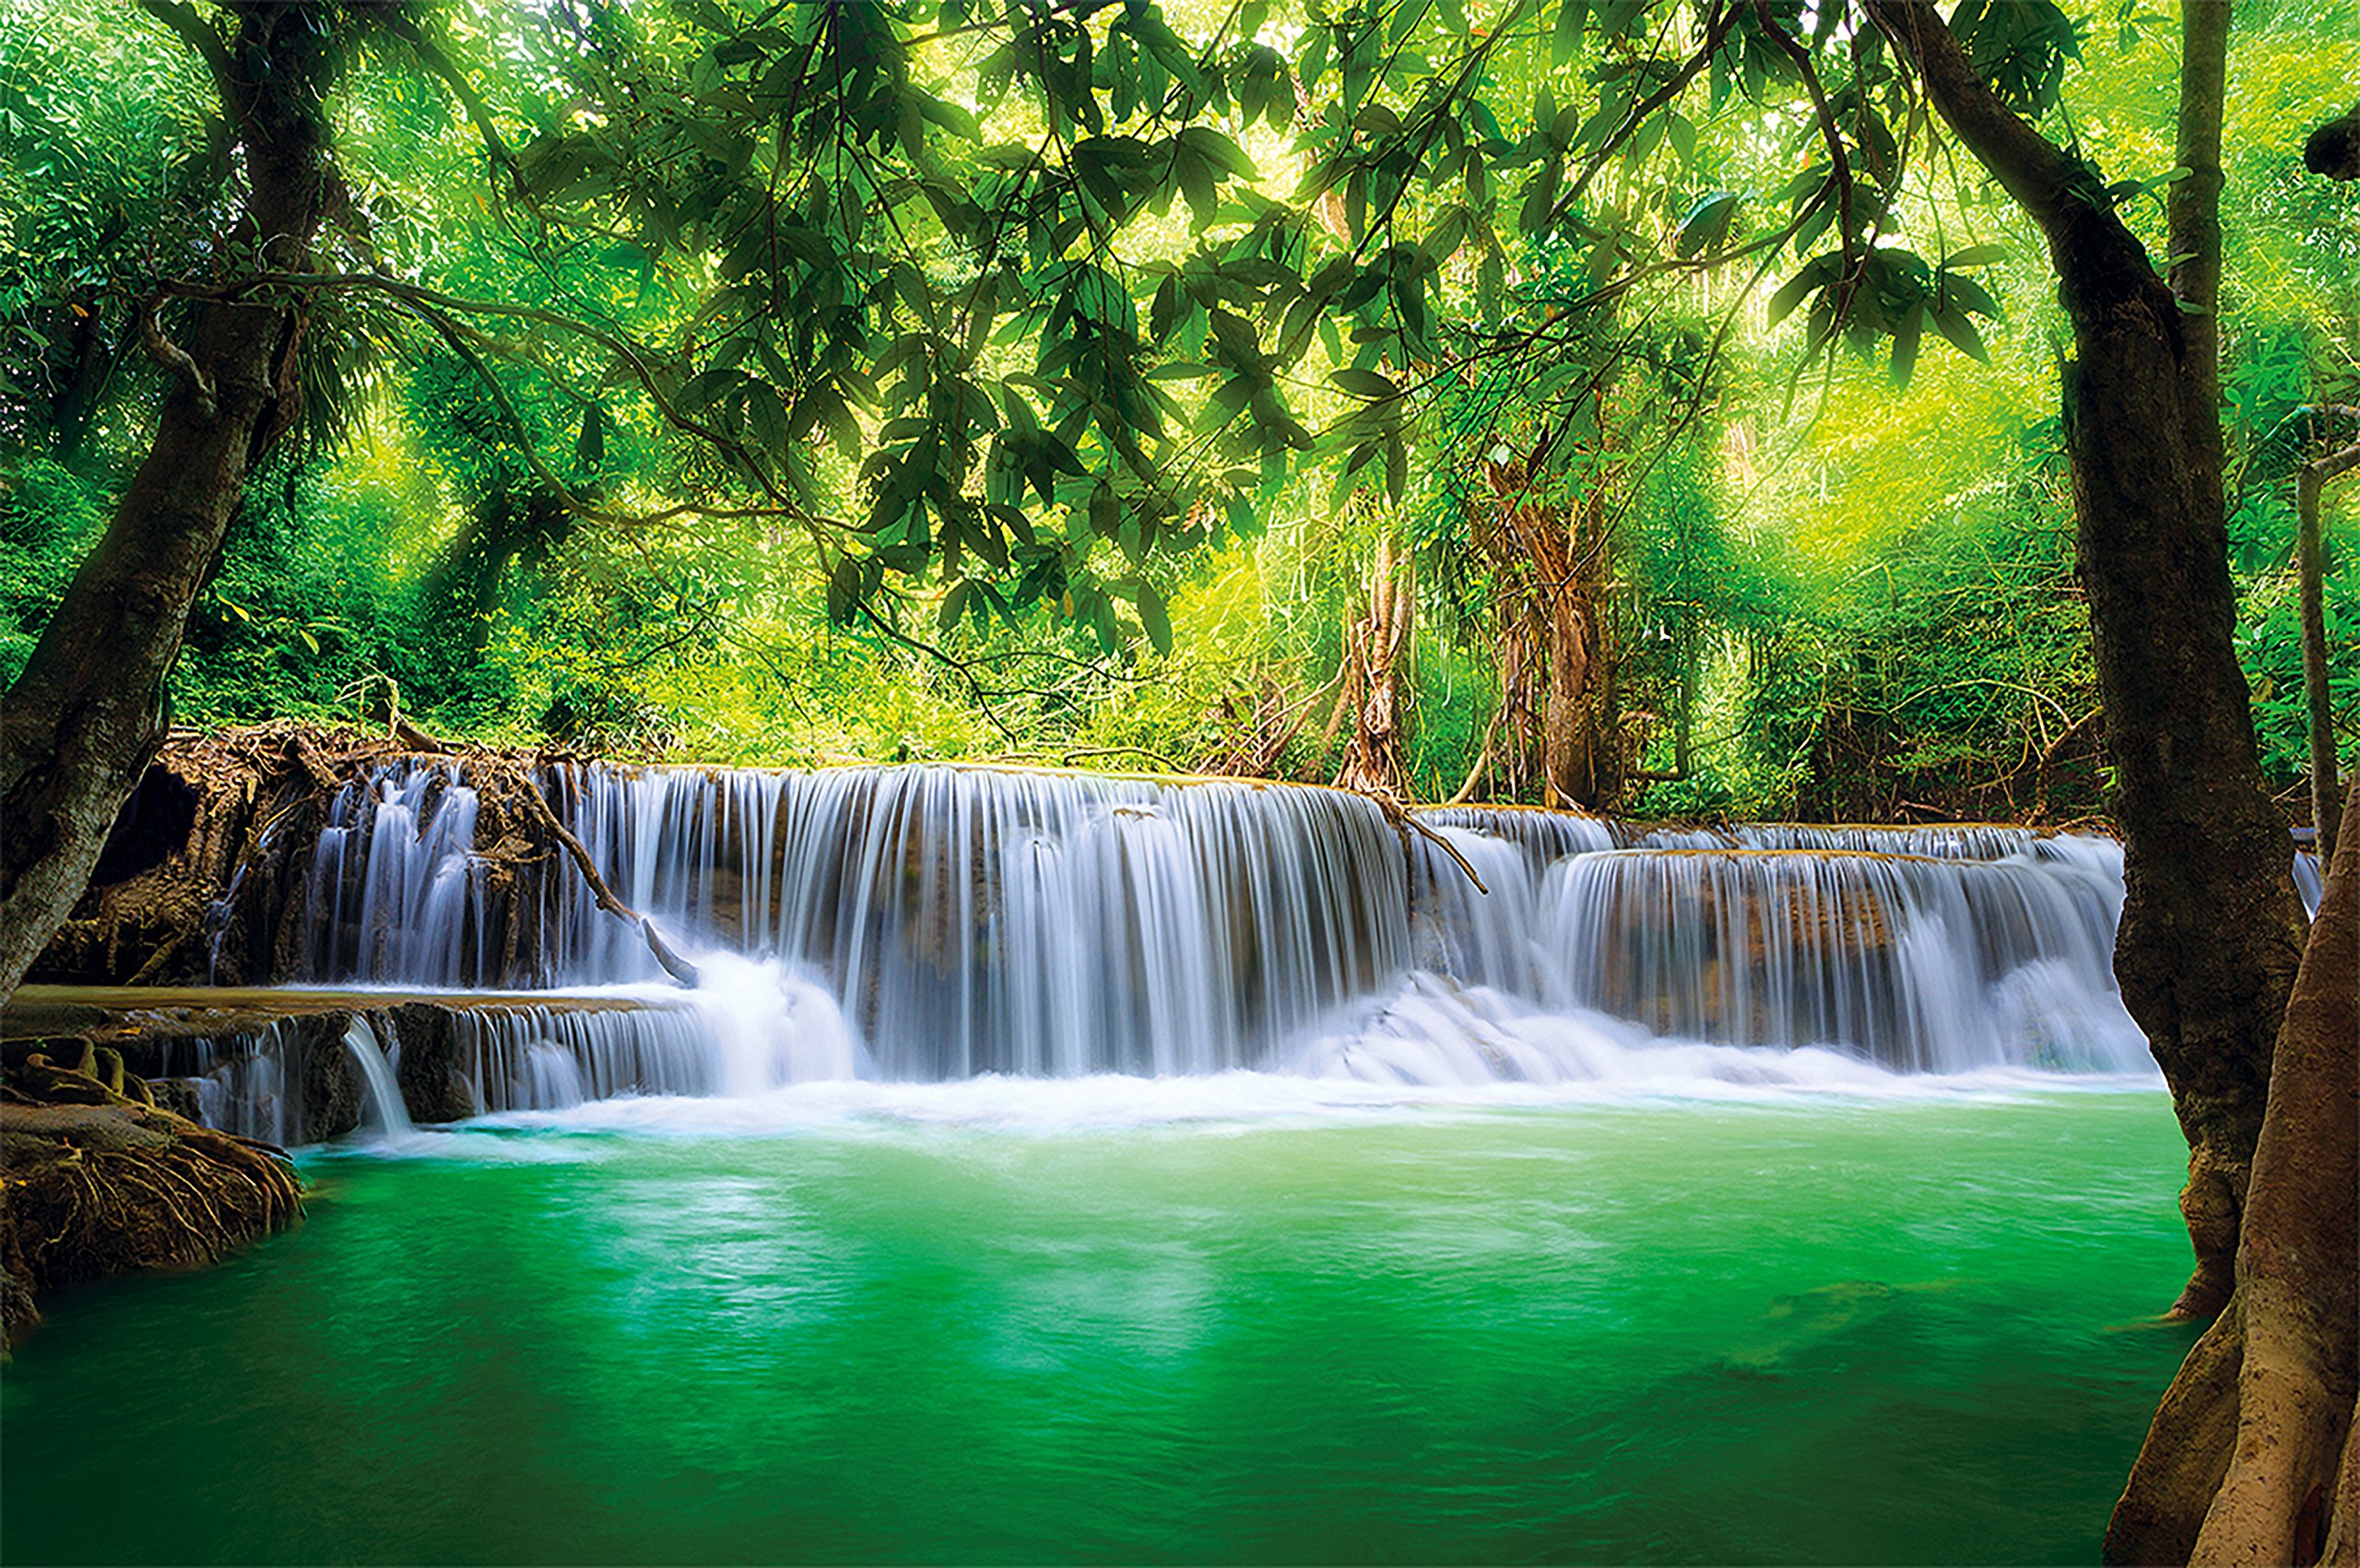 Great Art Photo Wallpaper Forest Waterfall Paradise Thailand Decoration 210 X 140 Cm 82 7 Inch X 55 Inch Mural Buy Online In Japan At Desertcart Jp Productid 139542603